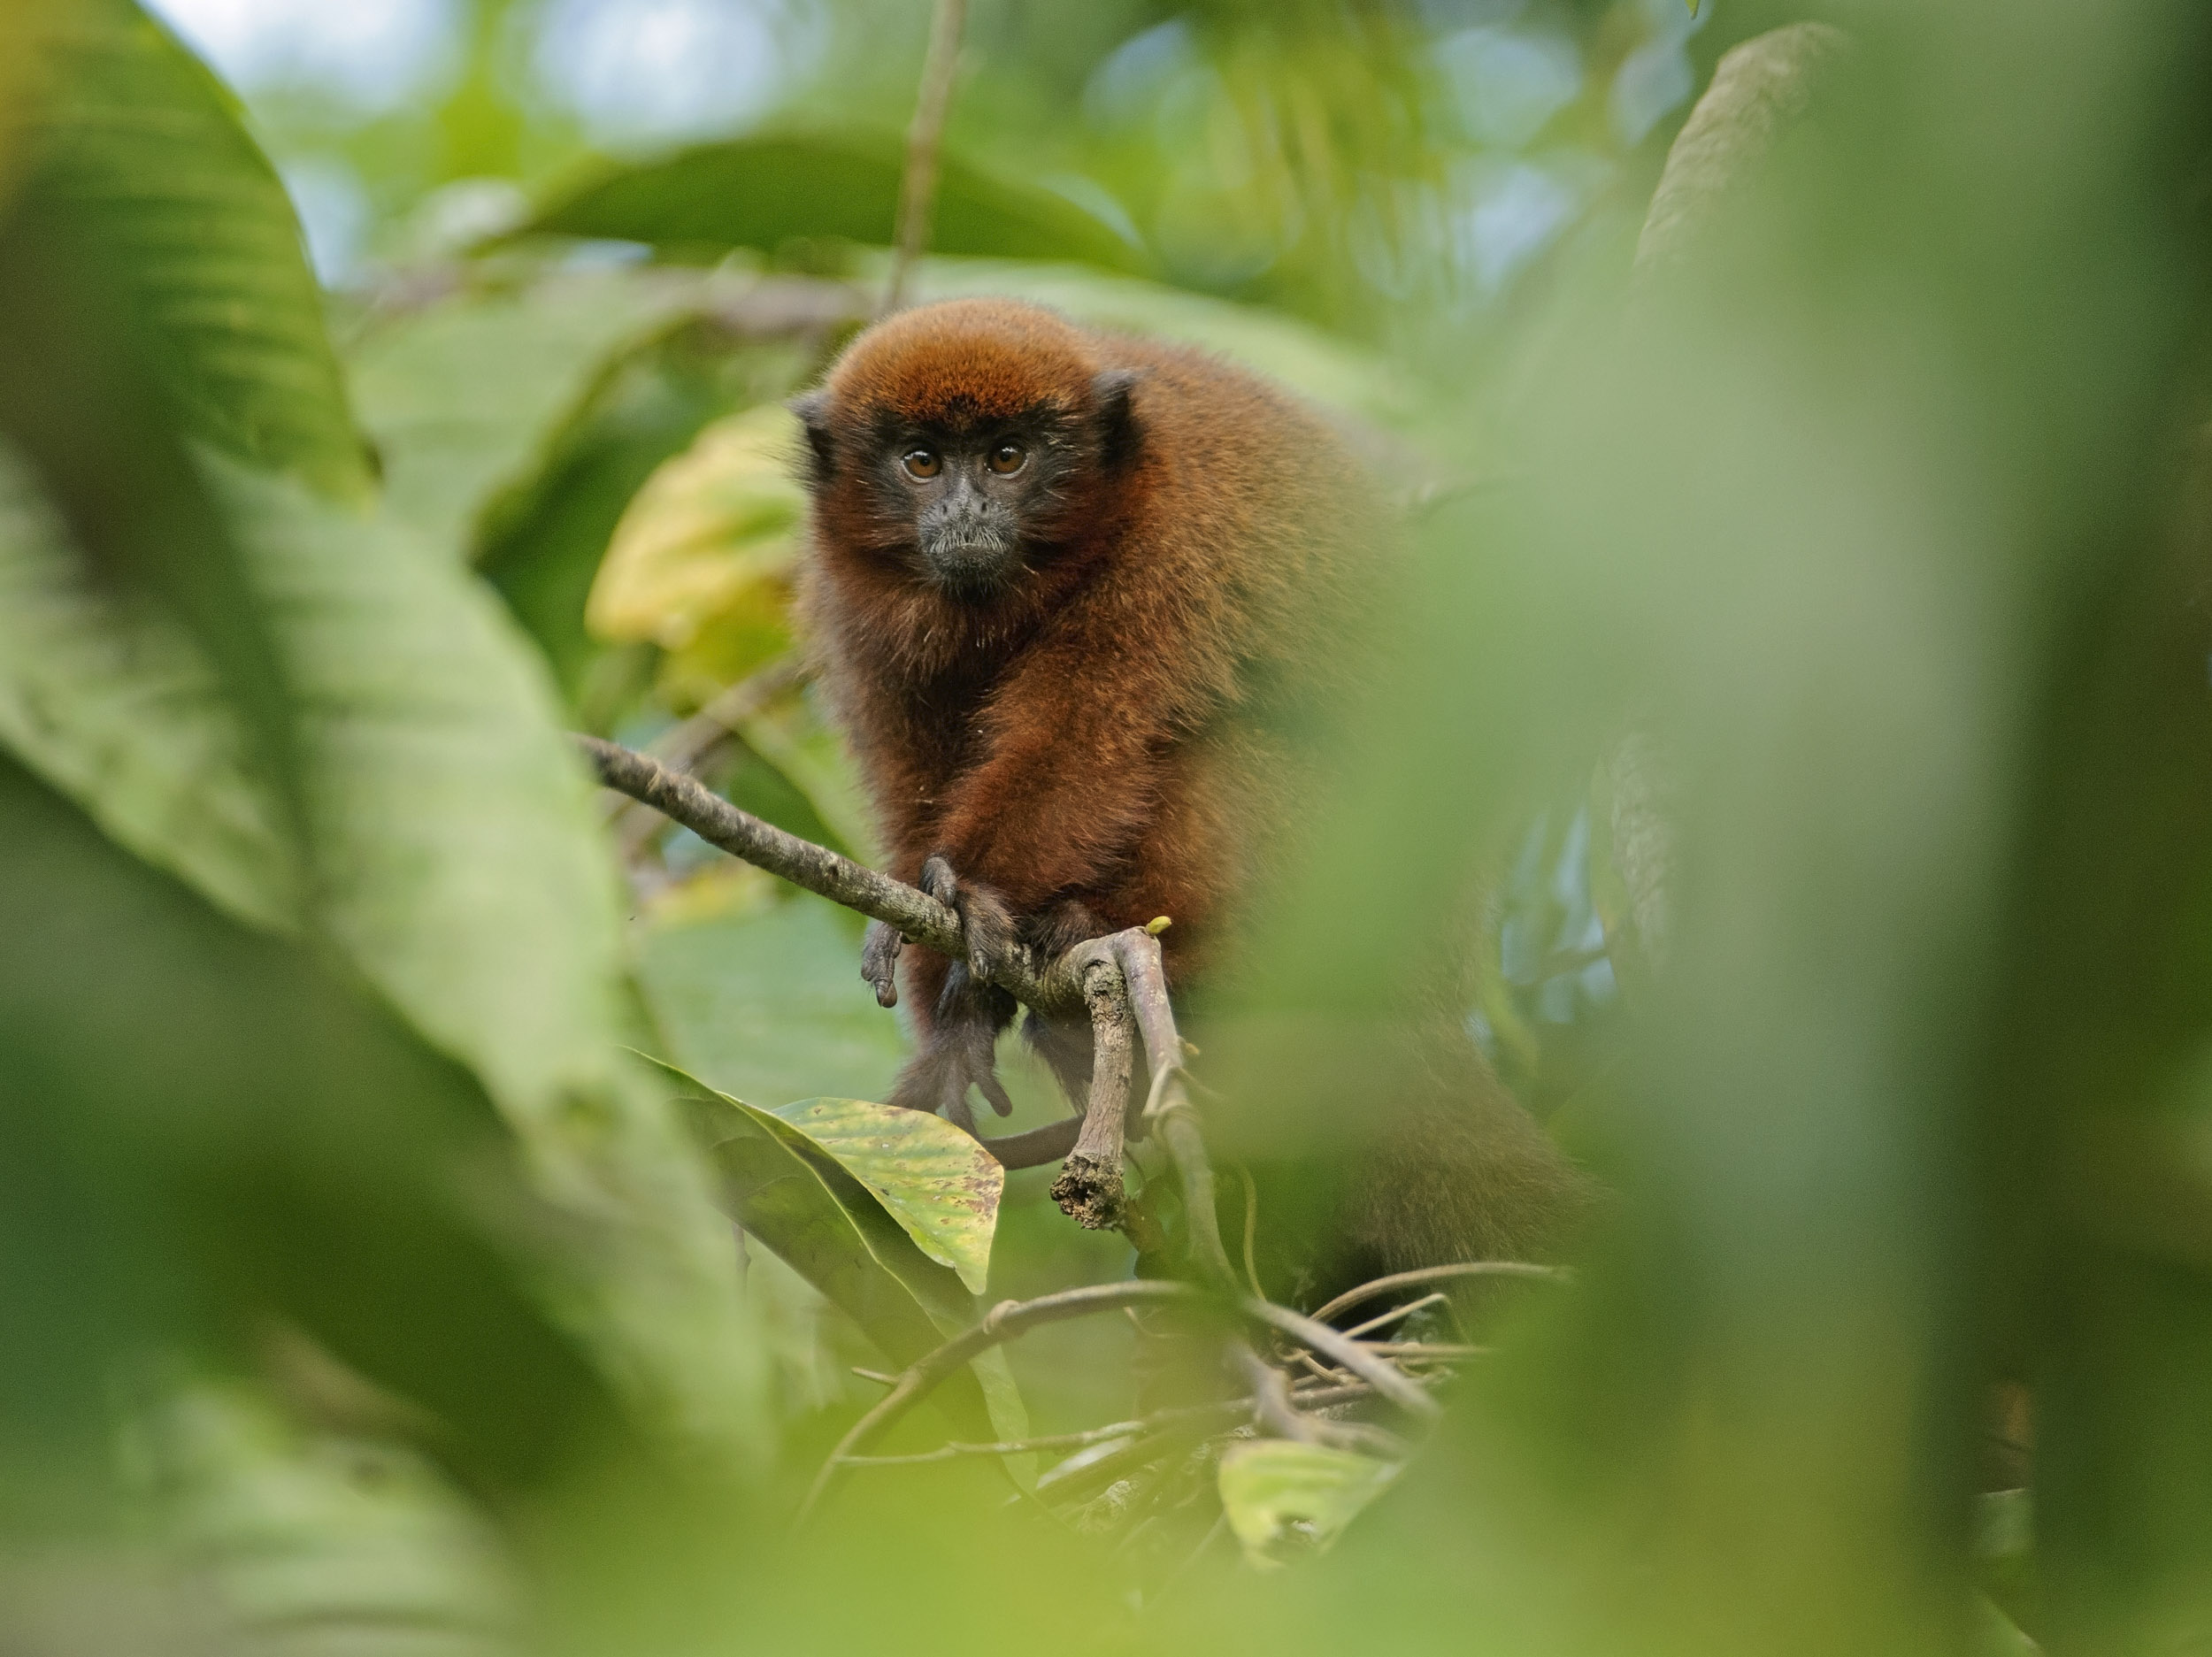 Dusky Titi (Callicebus moloch), in the Peruvian Amazon, 03/14.